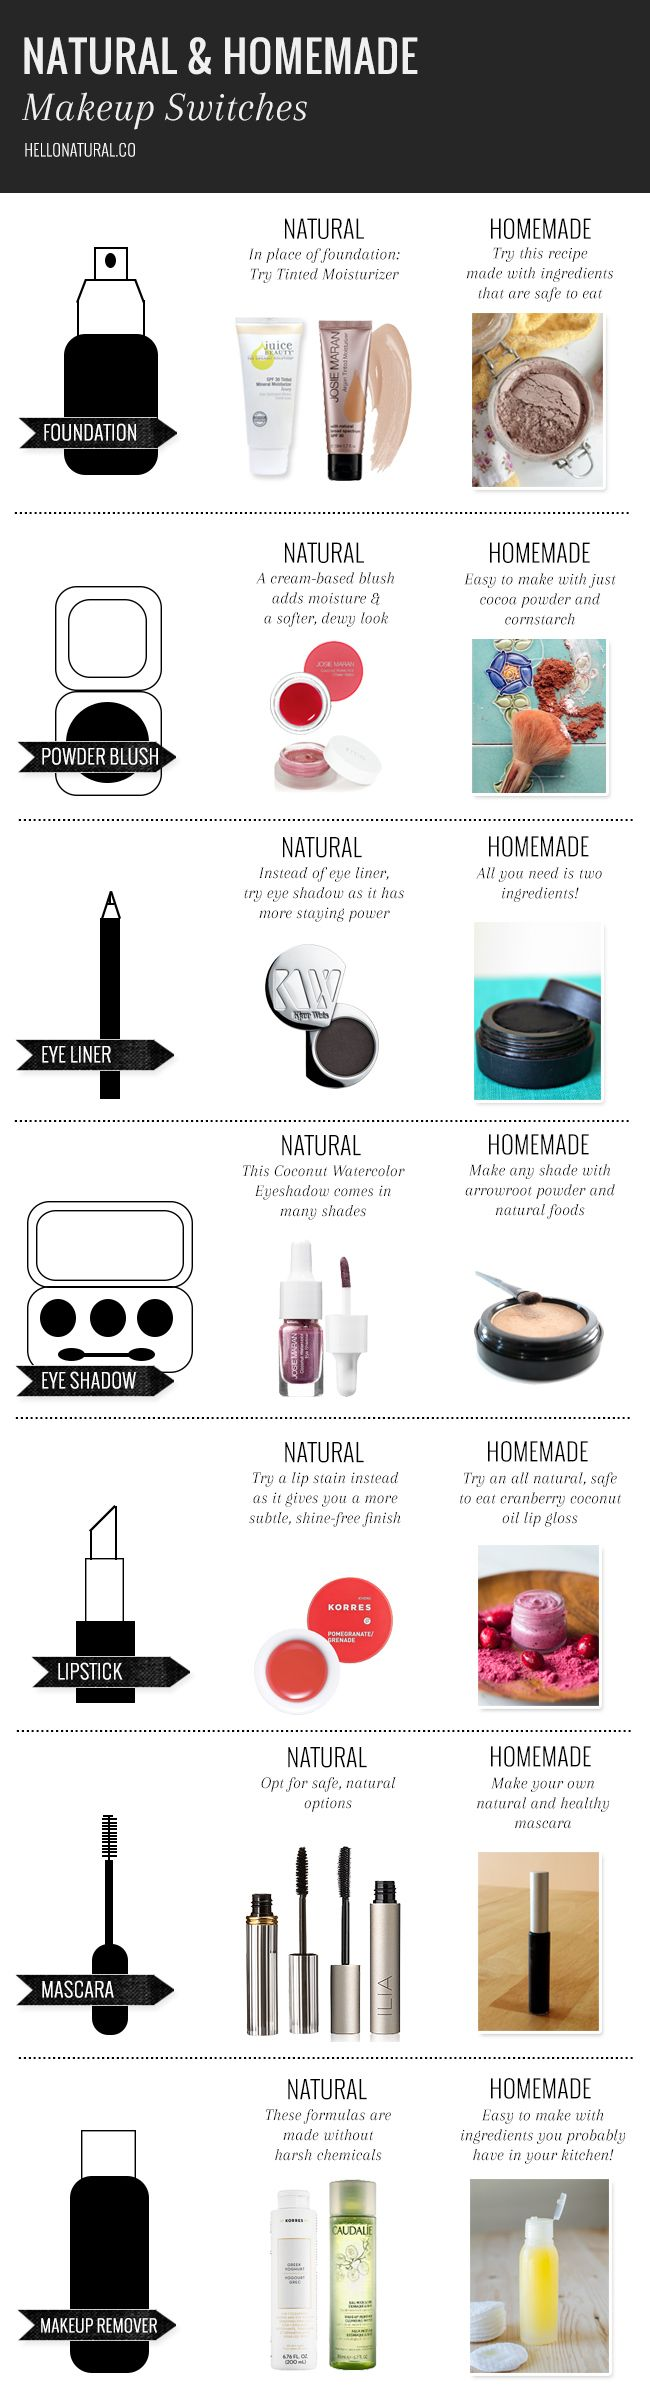 7 Best Homemade Makeup Recipes | HelloNatural.co: